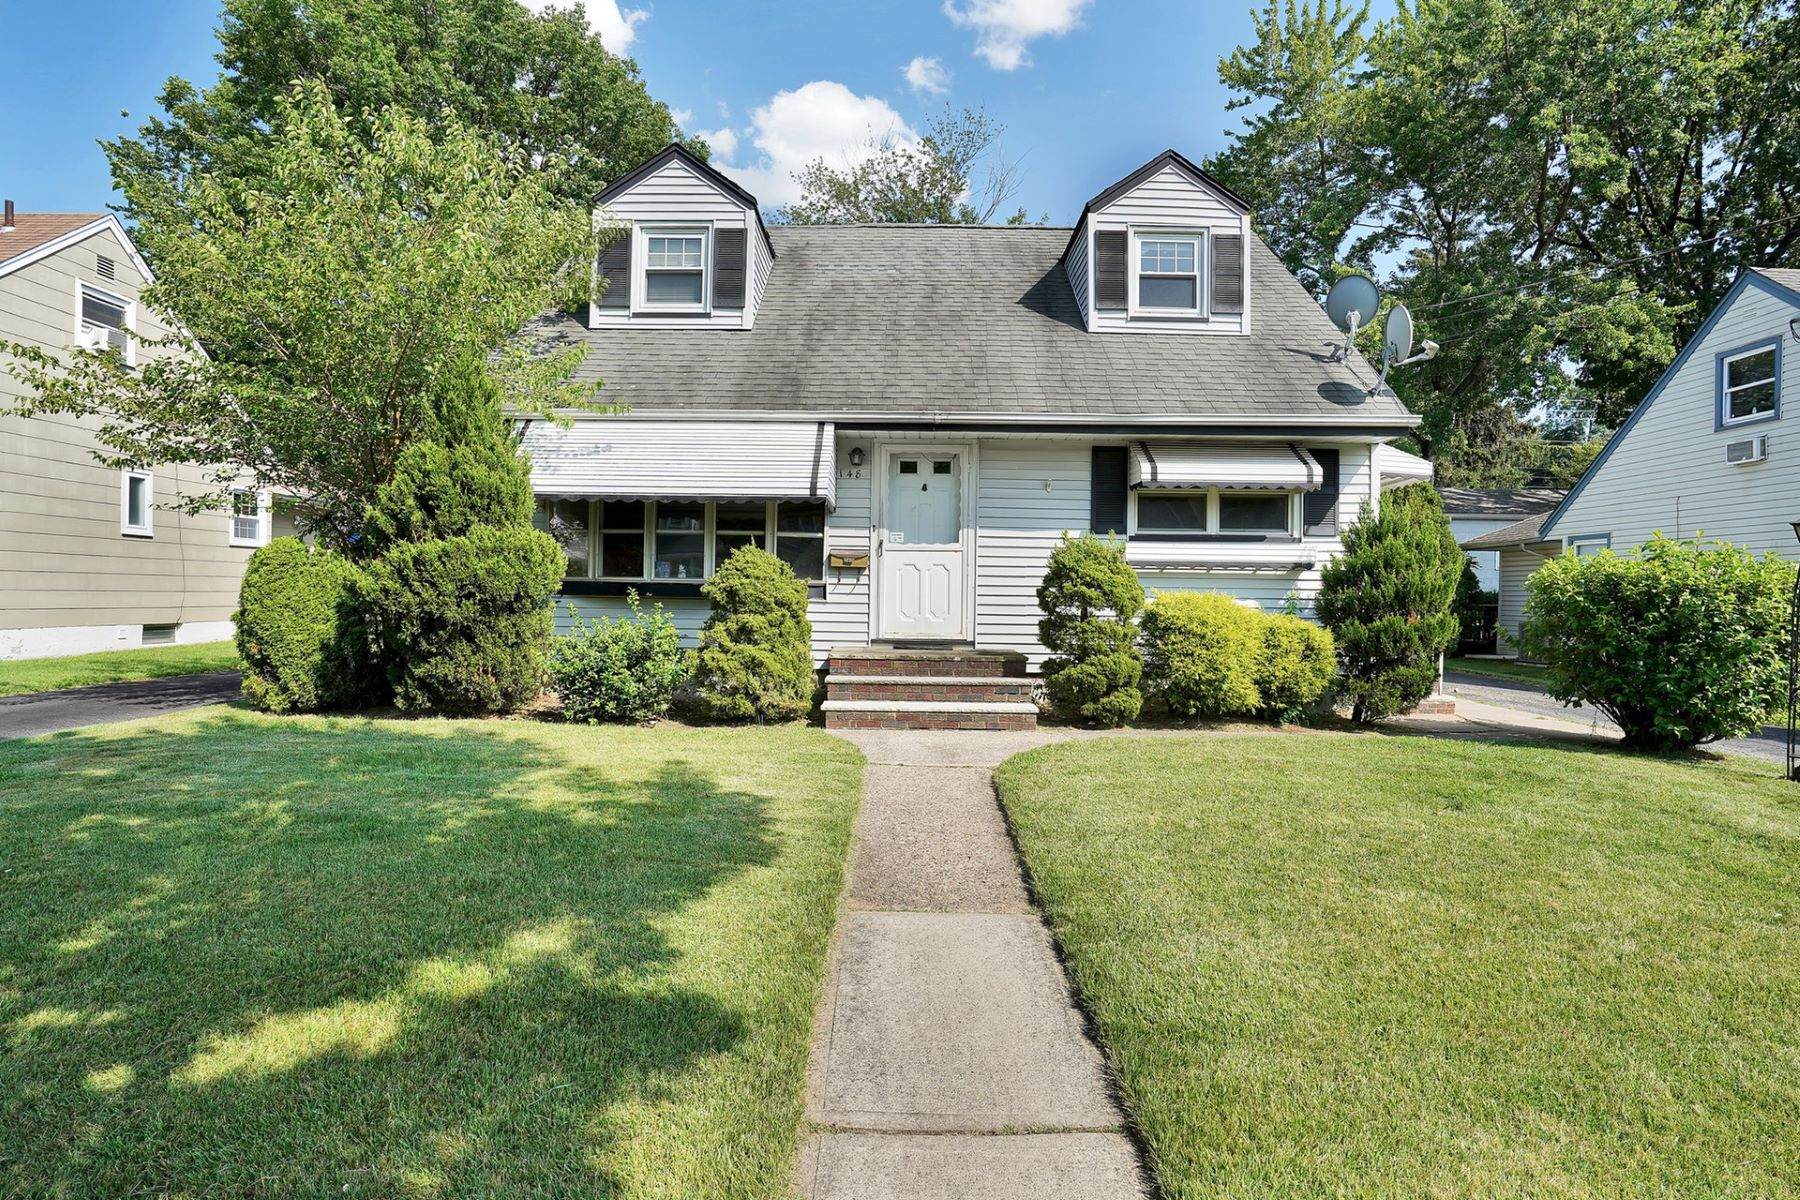 Single Family Homes for Sale at Prime Wood-Ridge location 148 Laurel Road Wood Ridge, New Jersey 07075 United States